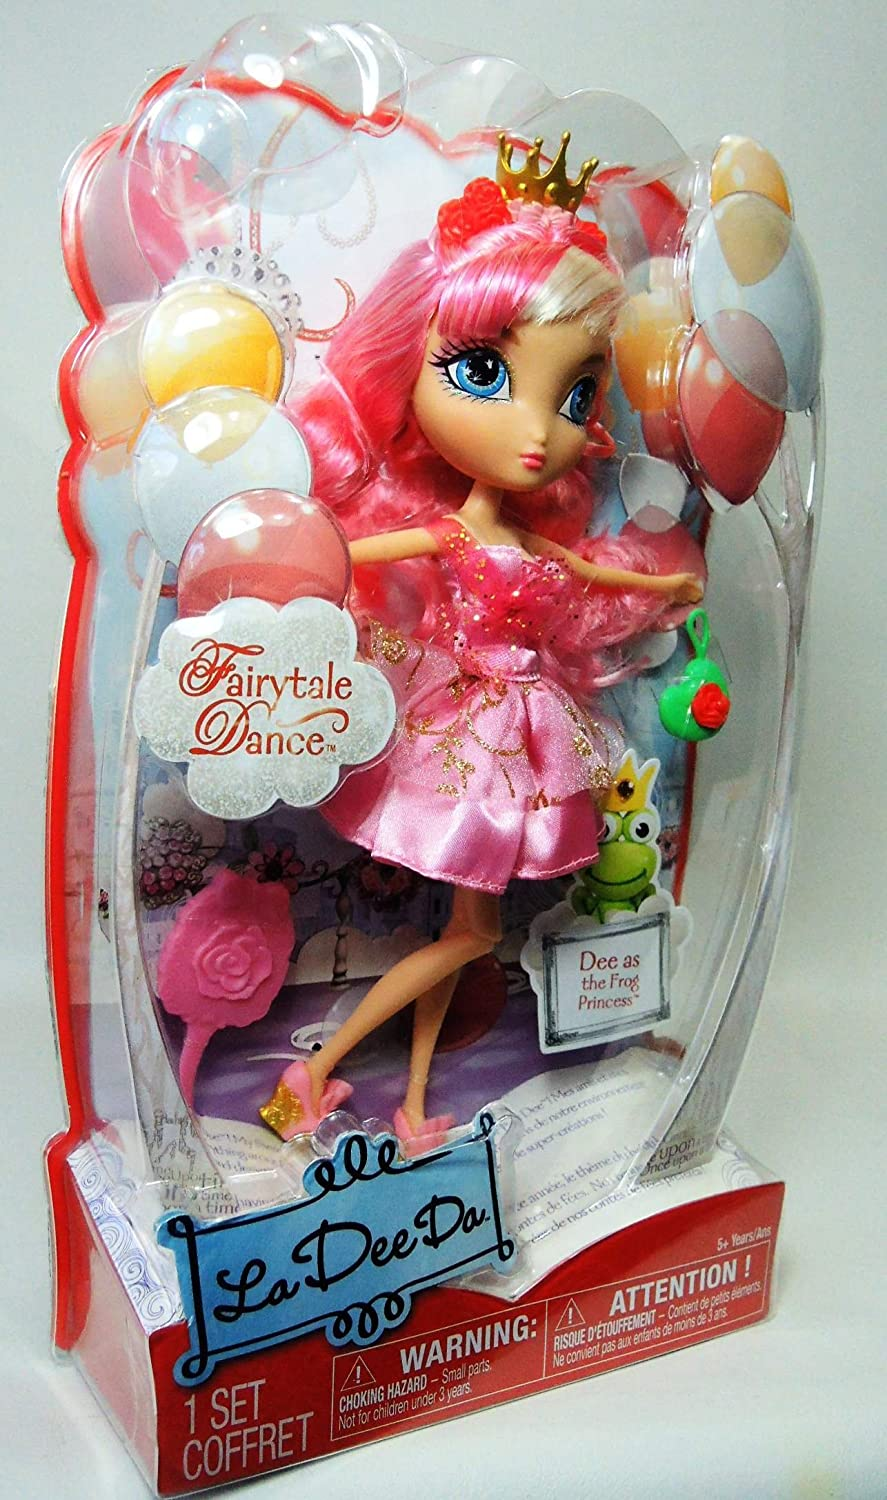 La Dee Da Doll Fairytale Dance Dee as Frog Princess Doll NEW NFRB Spin Master